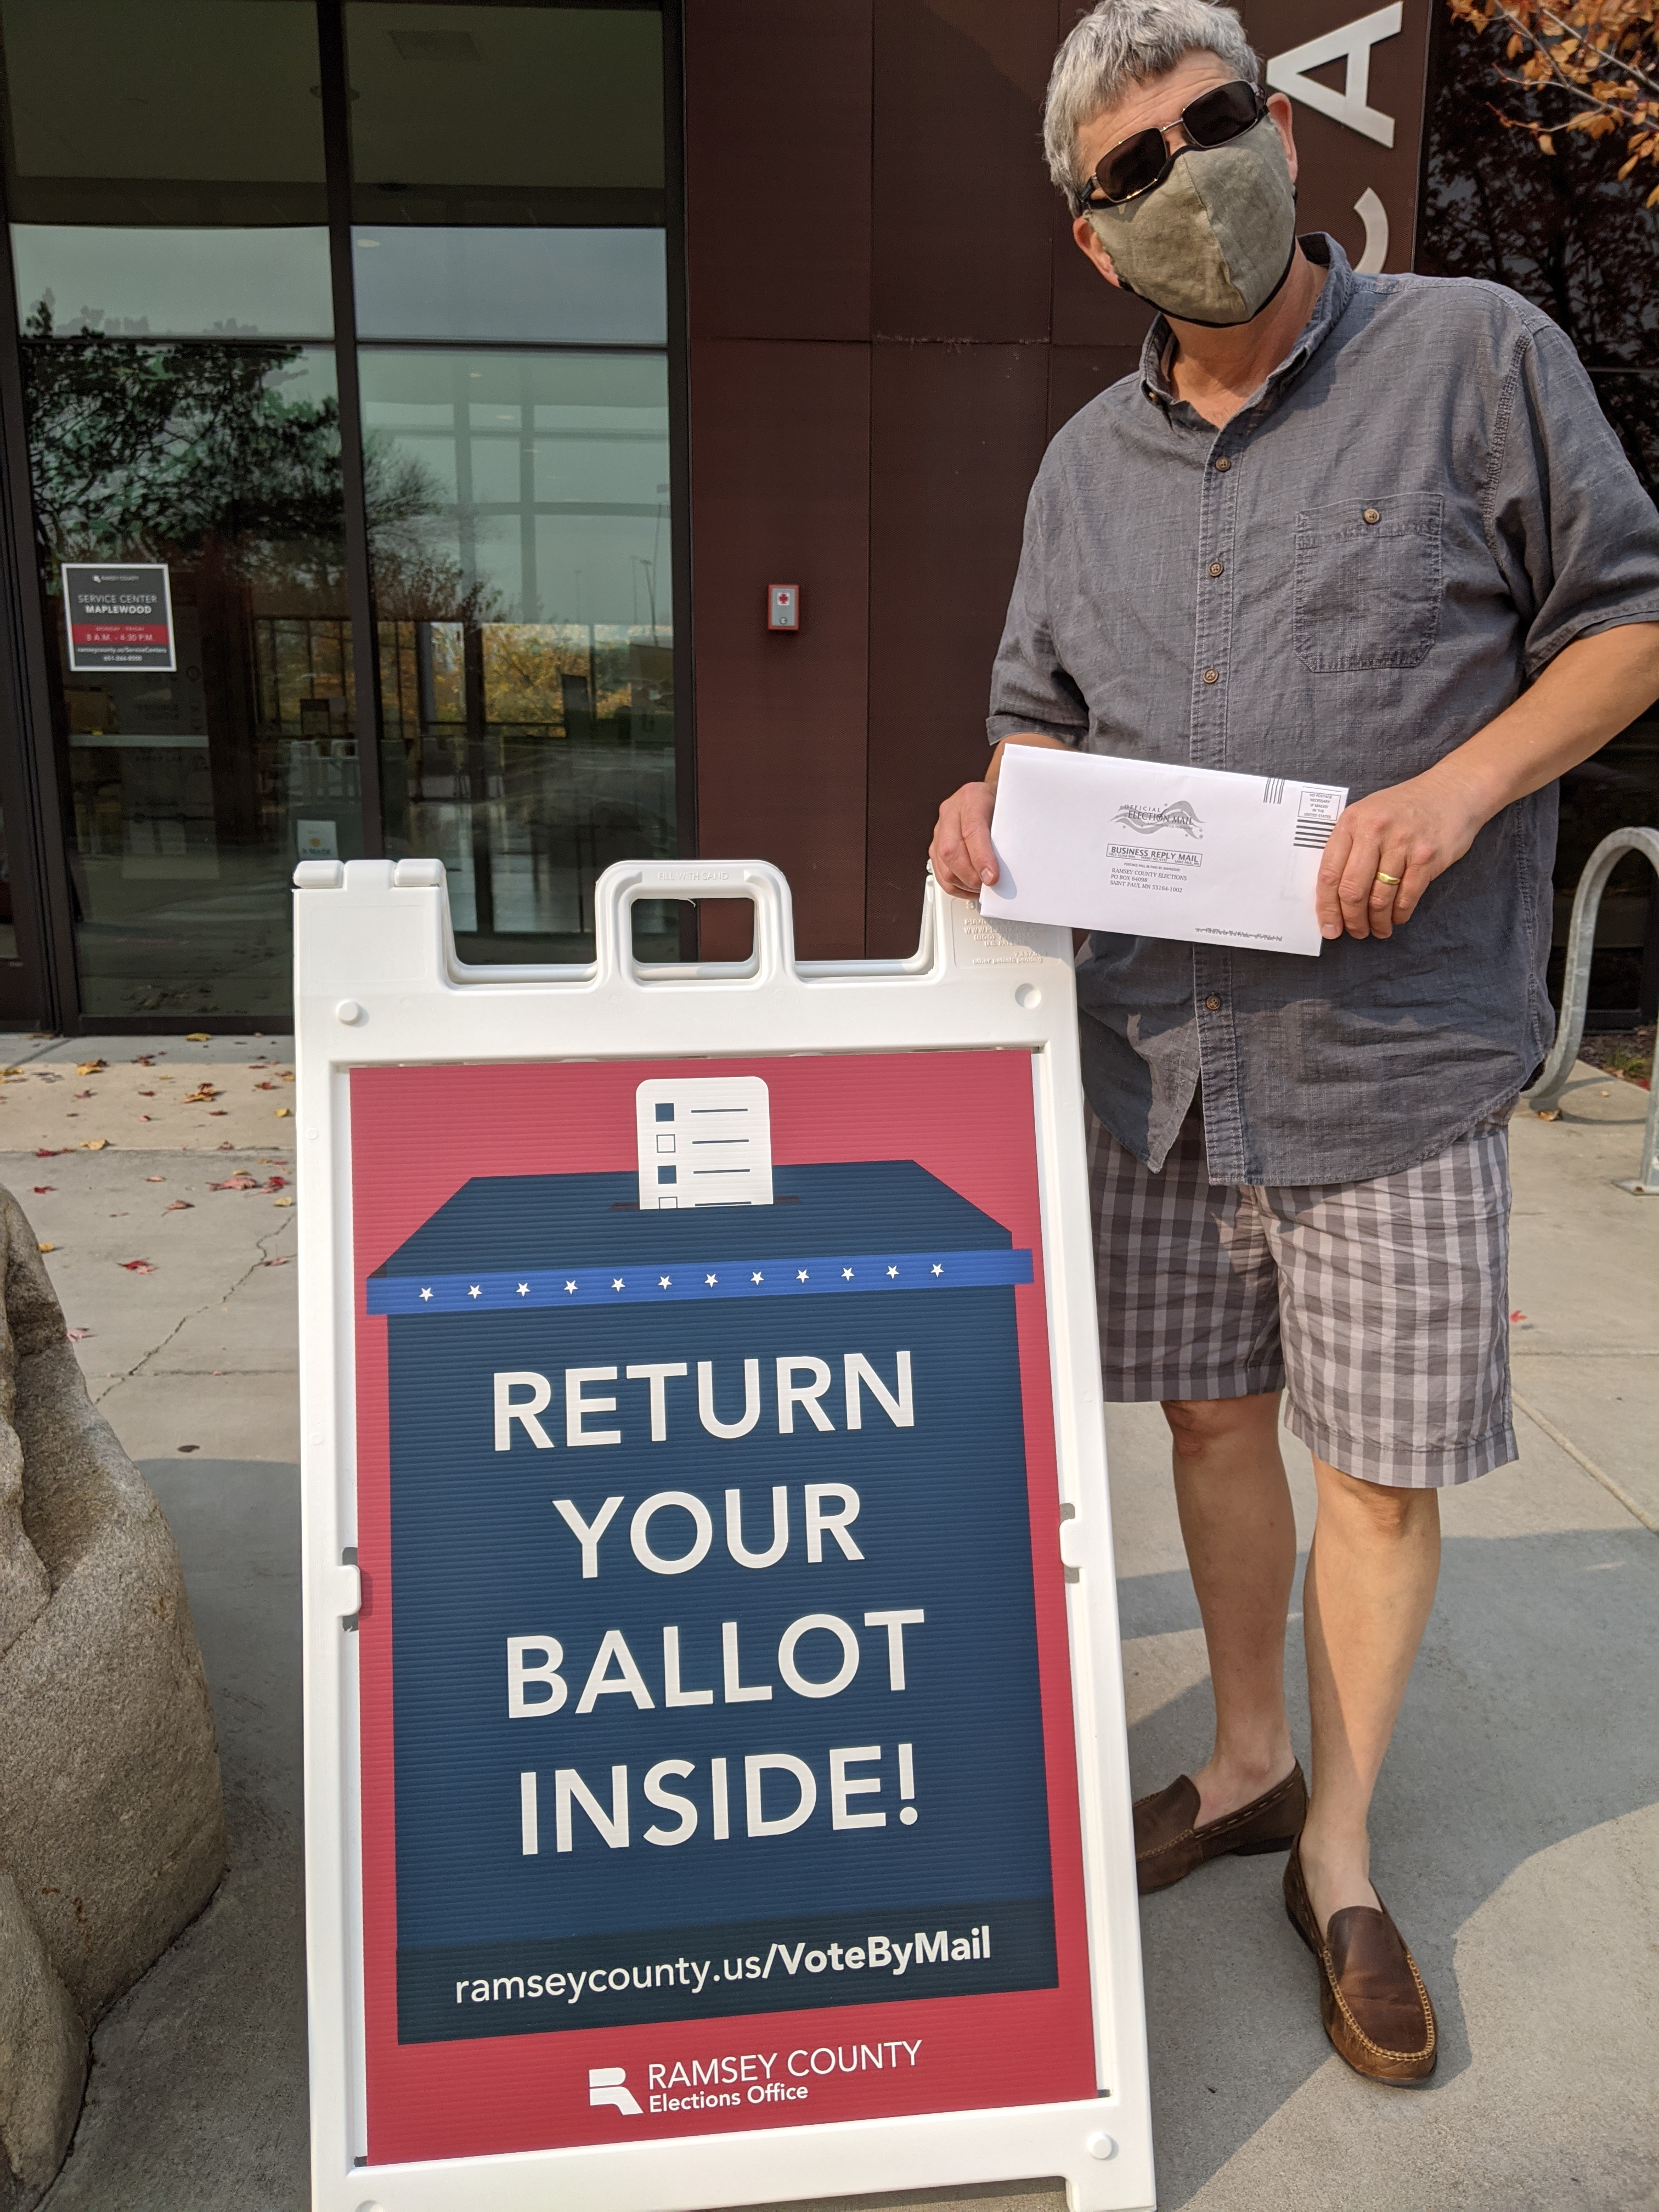 Man holding ballot in front of Ramsey County Return Your Ballot Inside sign